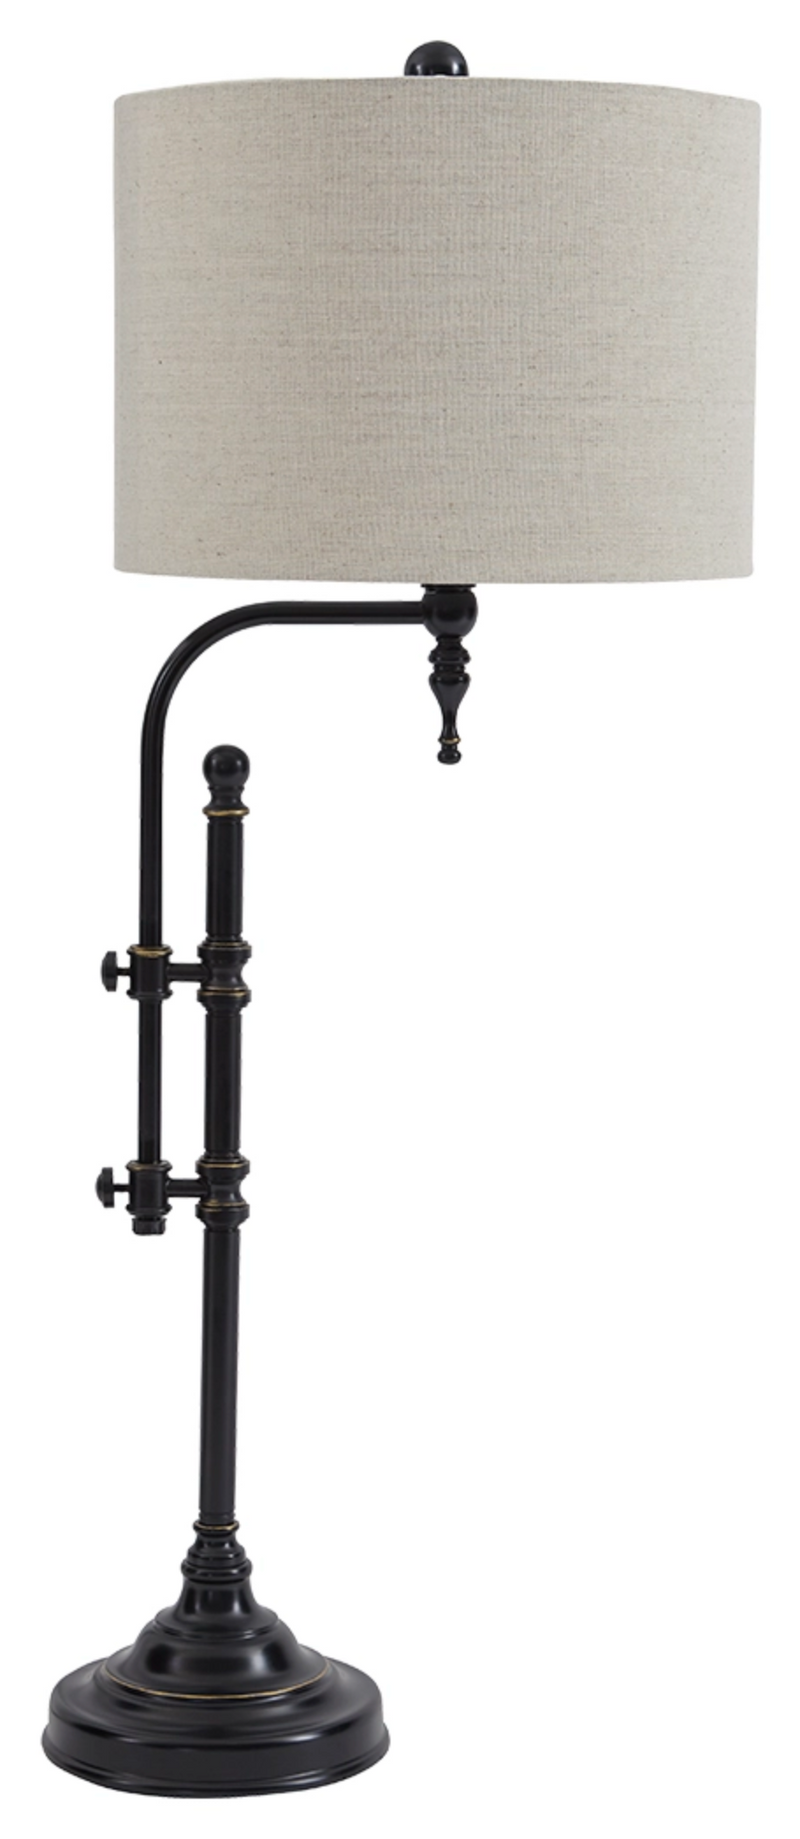 ANEMOON TABLE LAMP